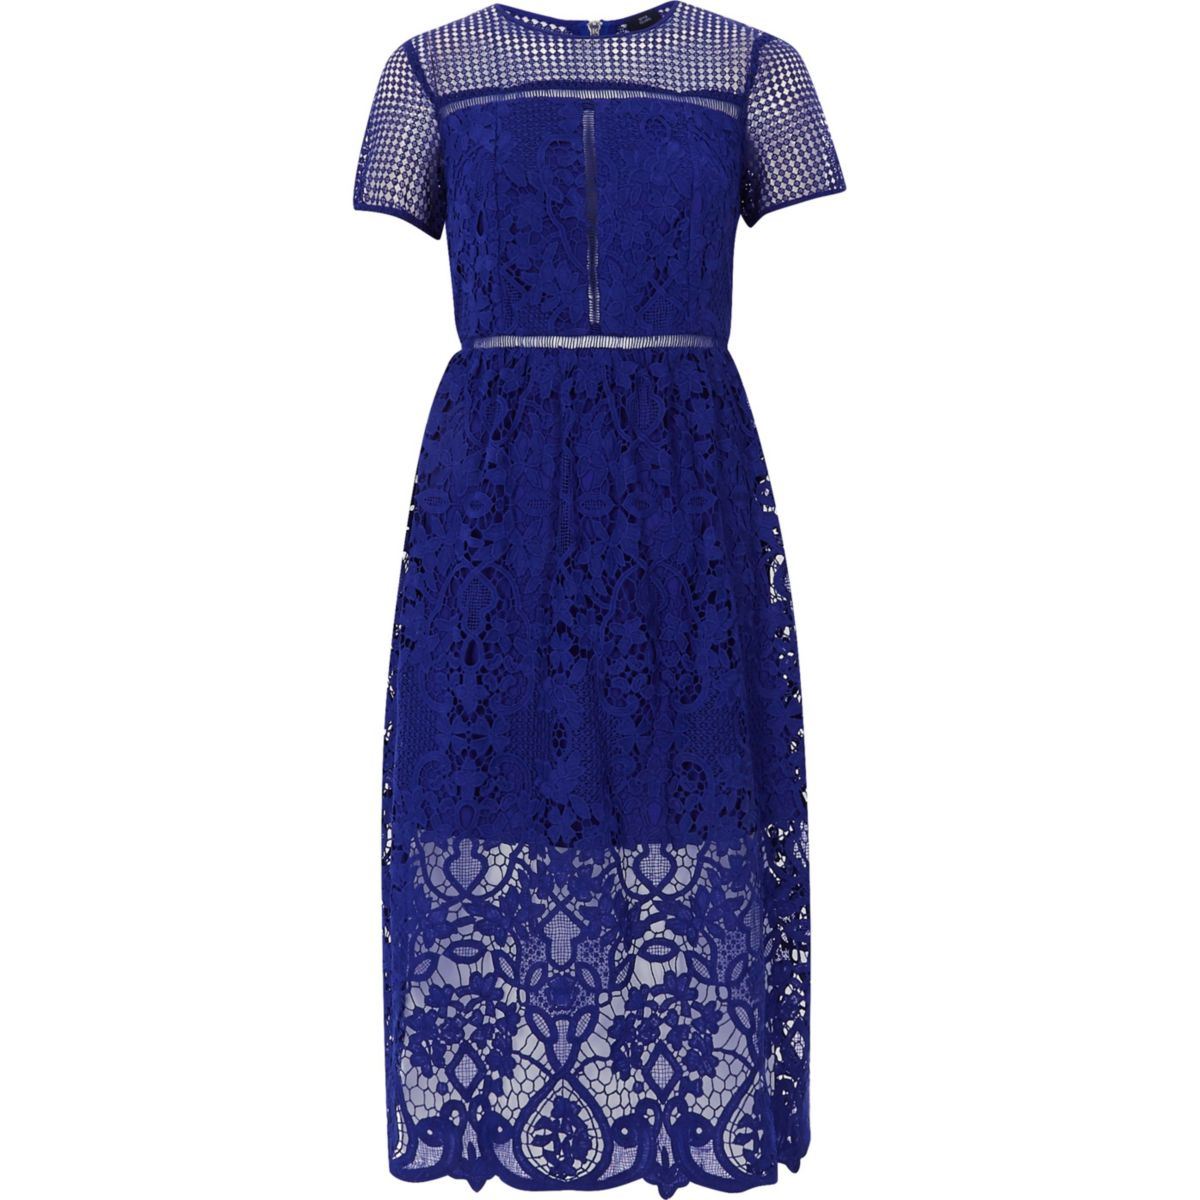 Bright blue floral lace waisted midi dress